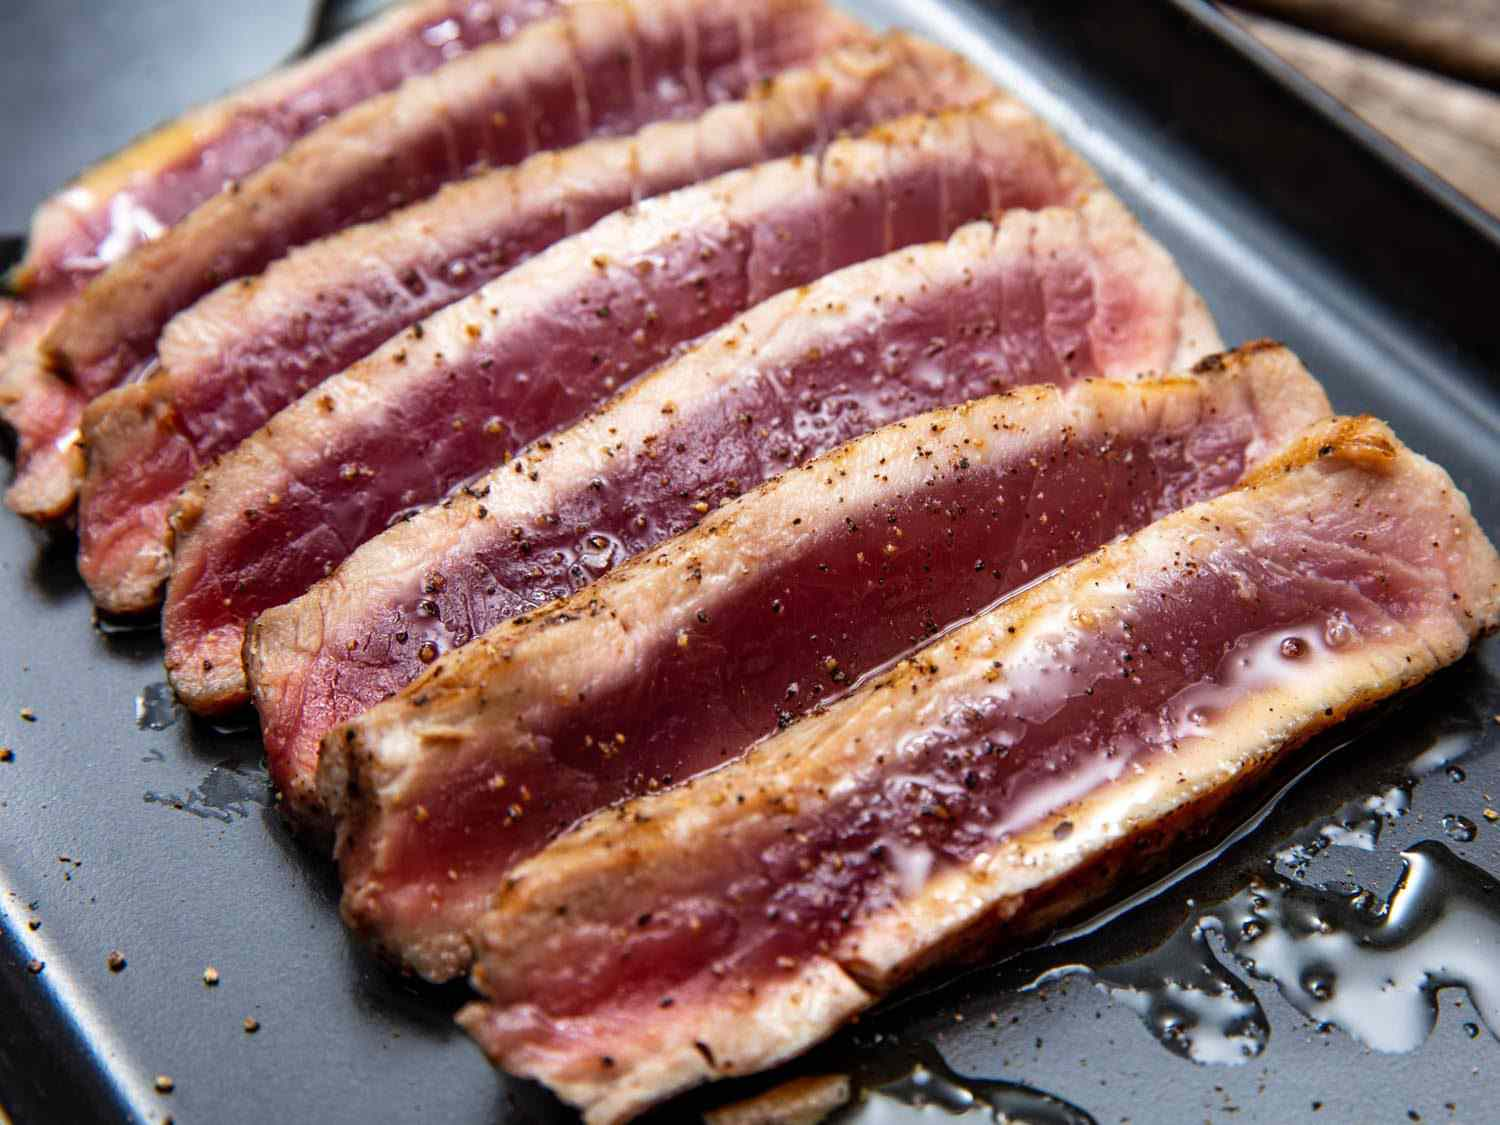 Slices of grilled tuna, cooked just around the edges and totally rare (raw, even) in the center, drizzled with olive oil and seasoned with salt and freshly ground black pepper